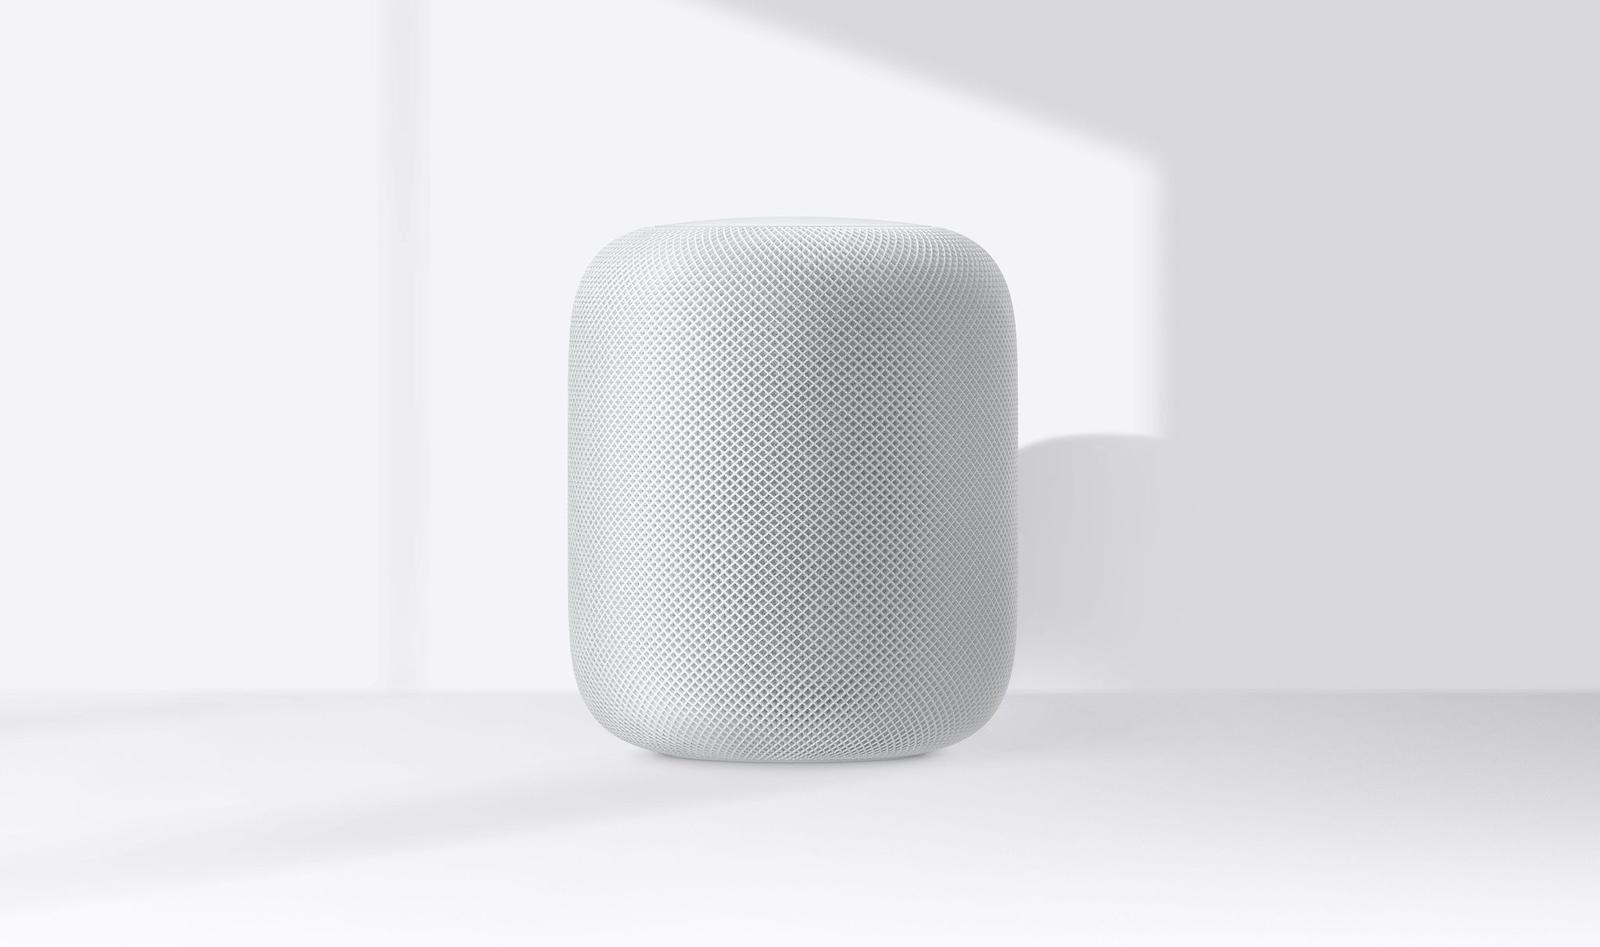 homepod-white-whole.jpg